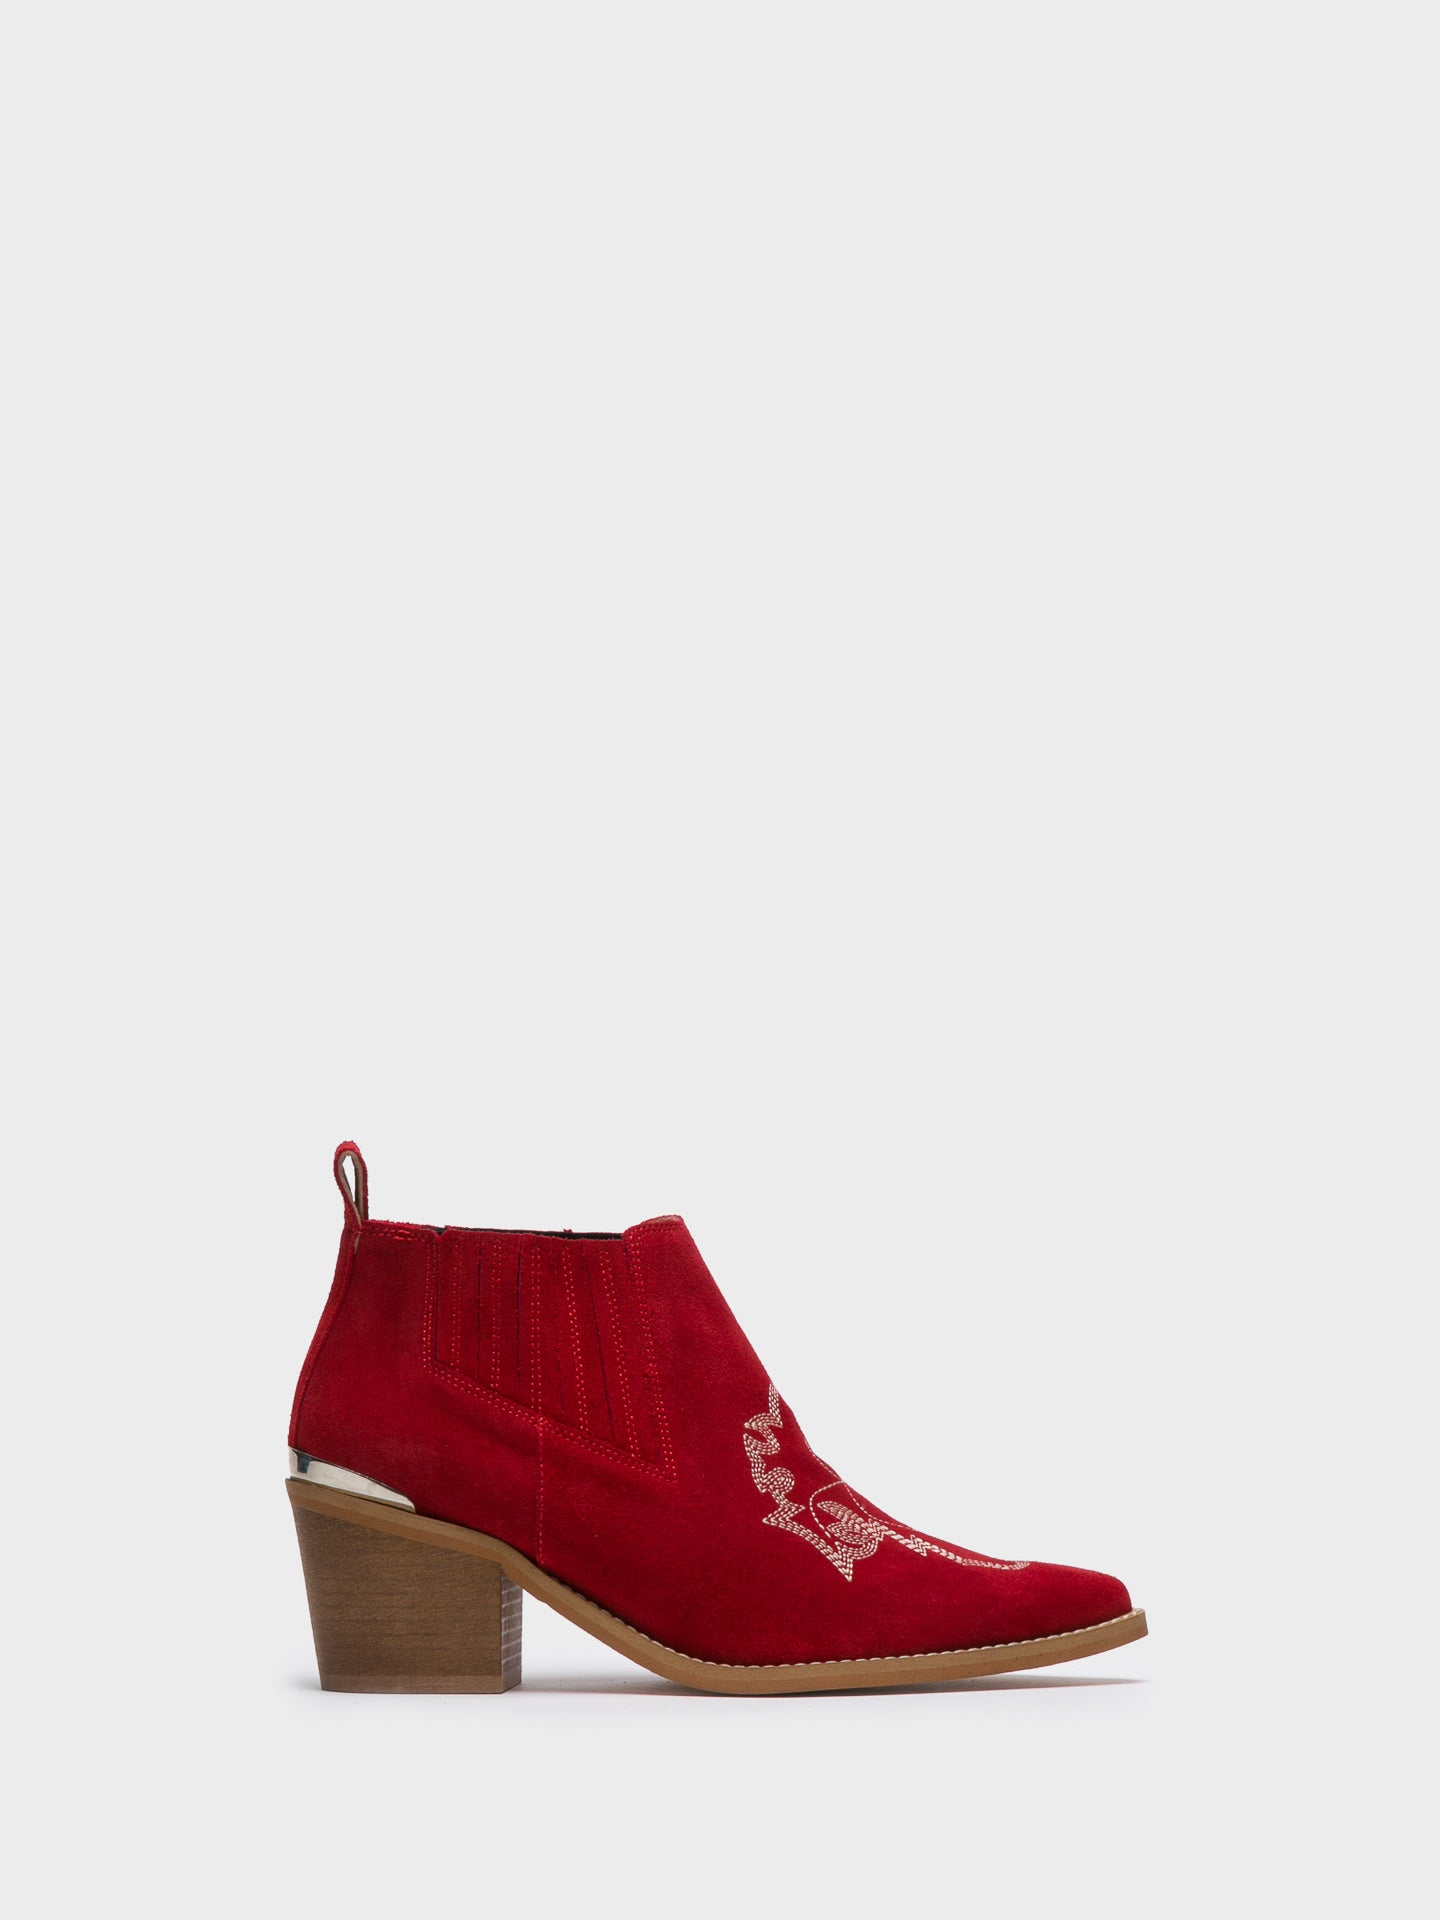 Foreva Red Cowboy Ankle Boots